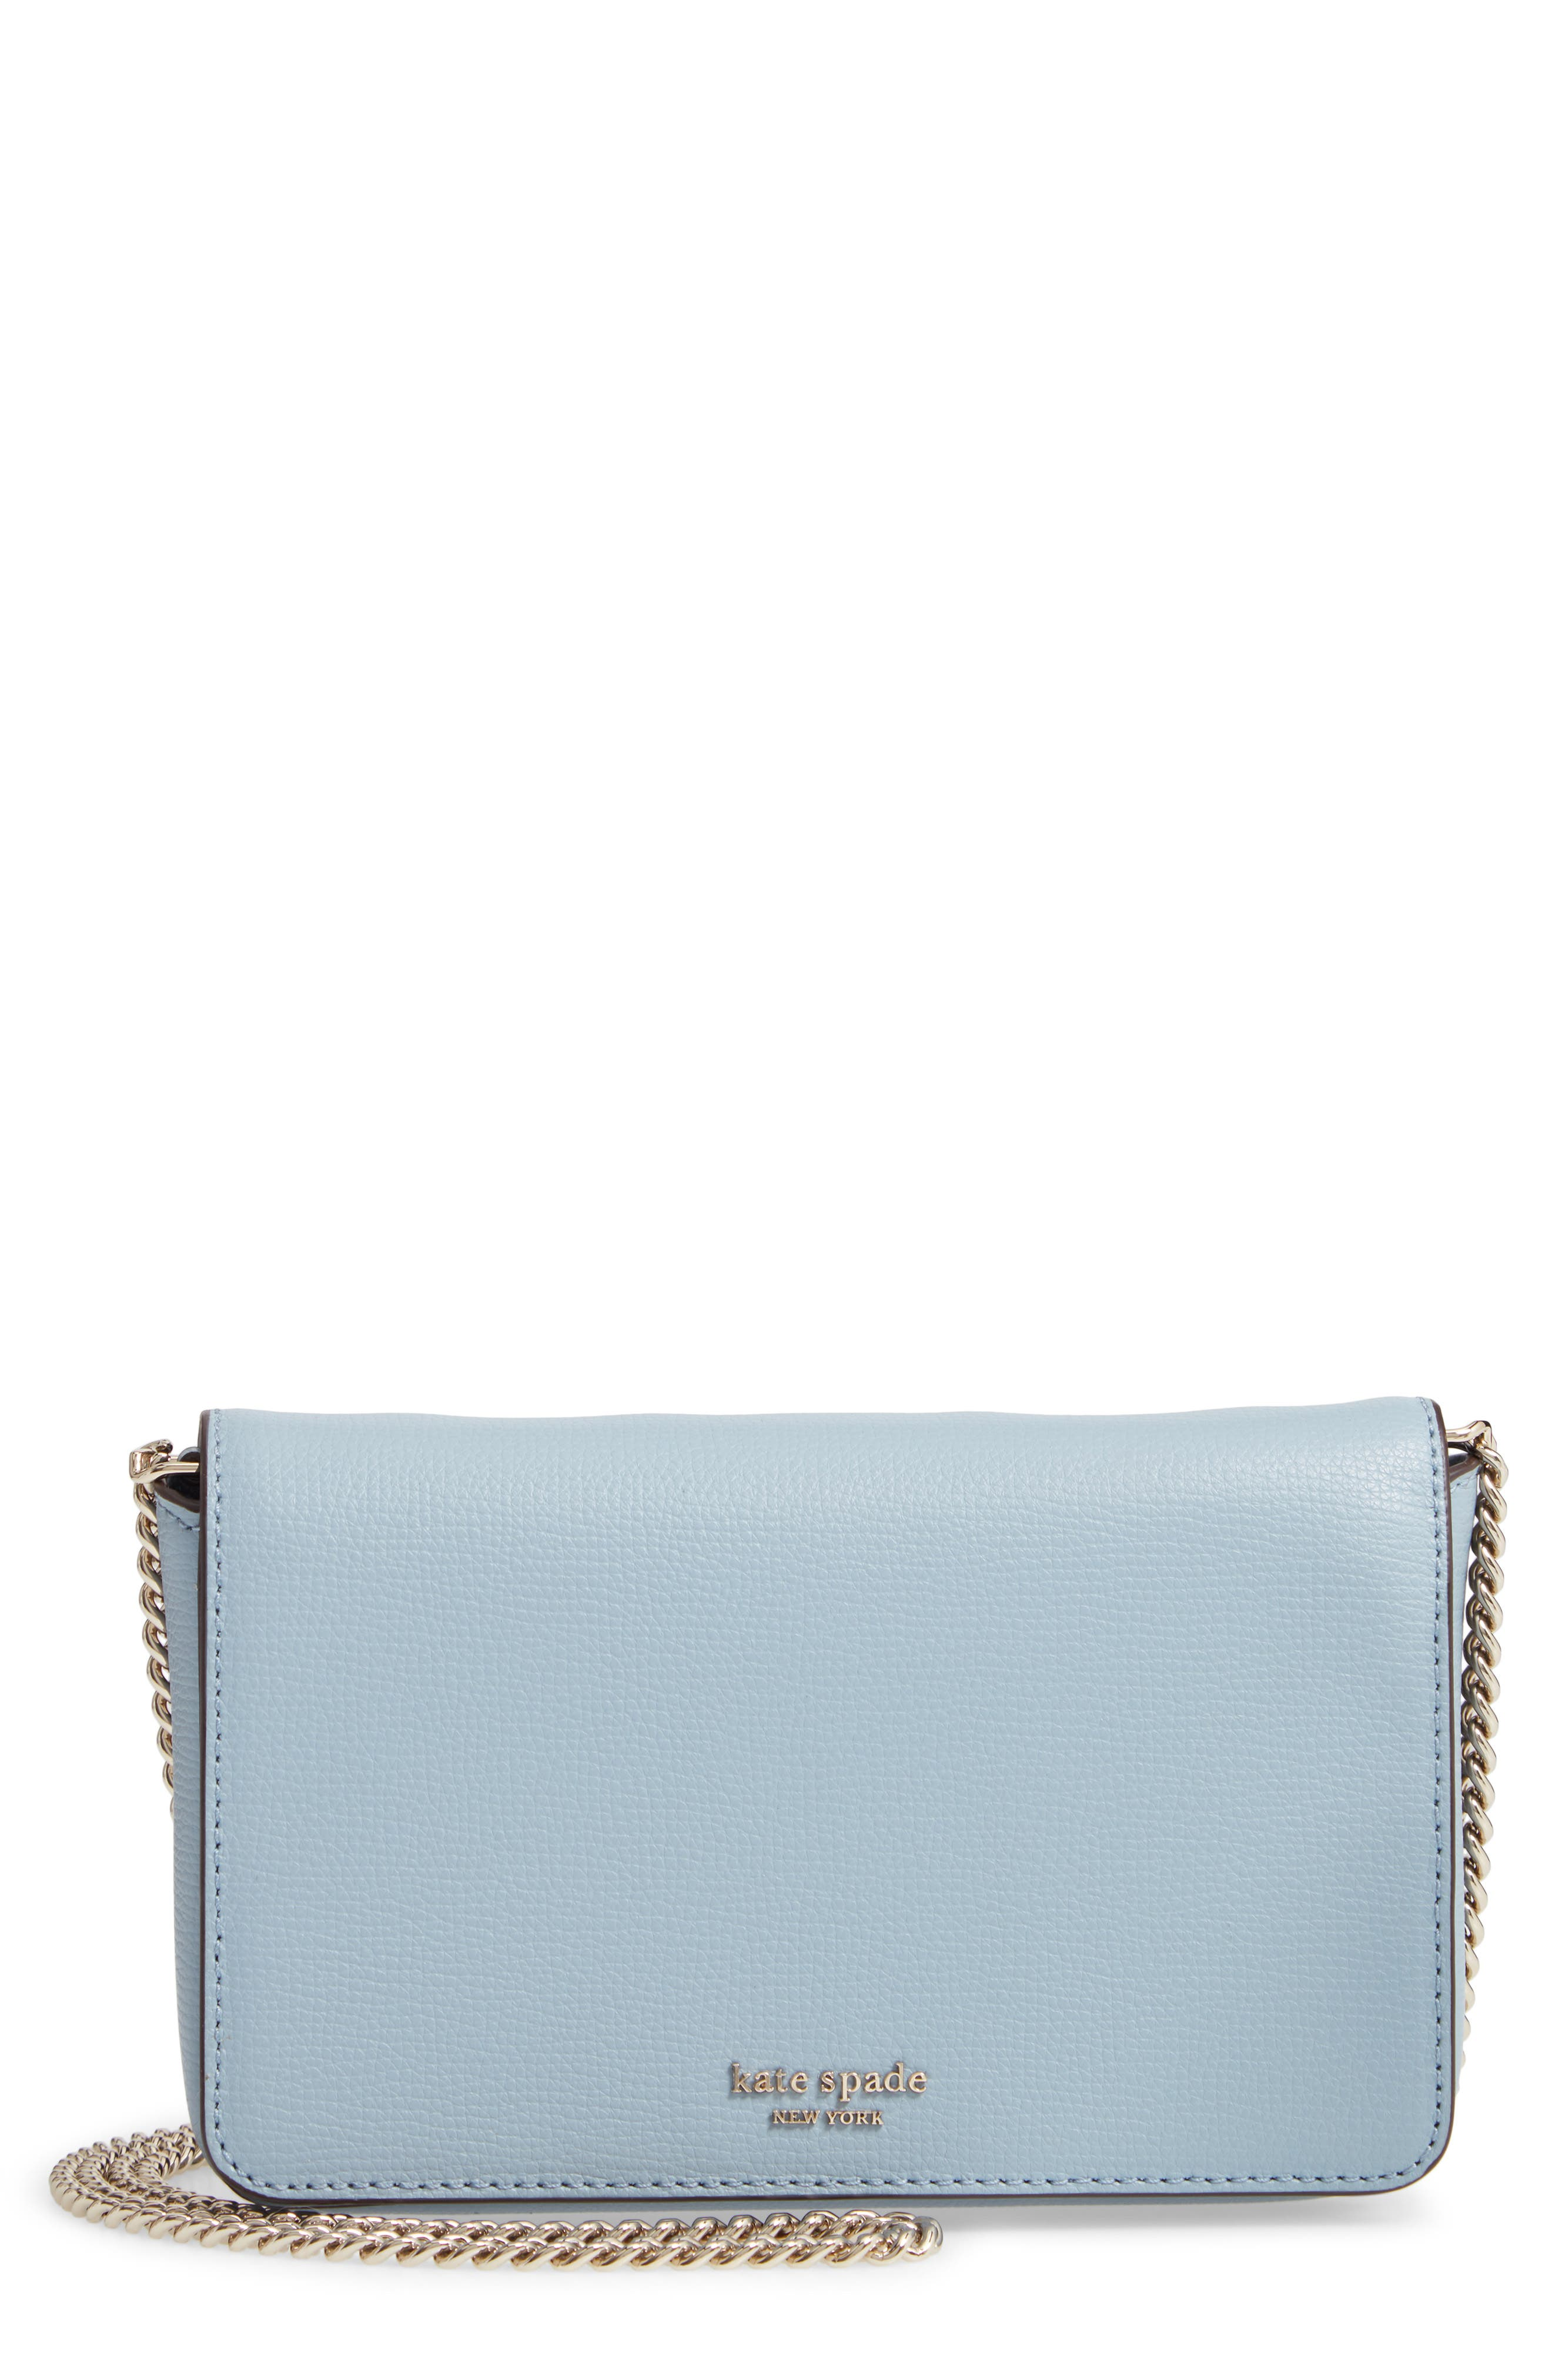 d2cd05461daa Kate Spade New York Wallets   Card Cases for Women